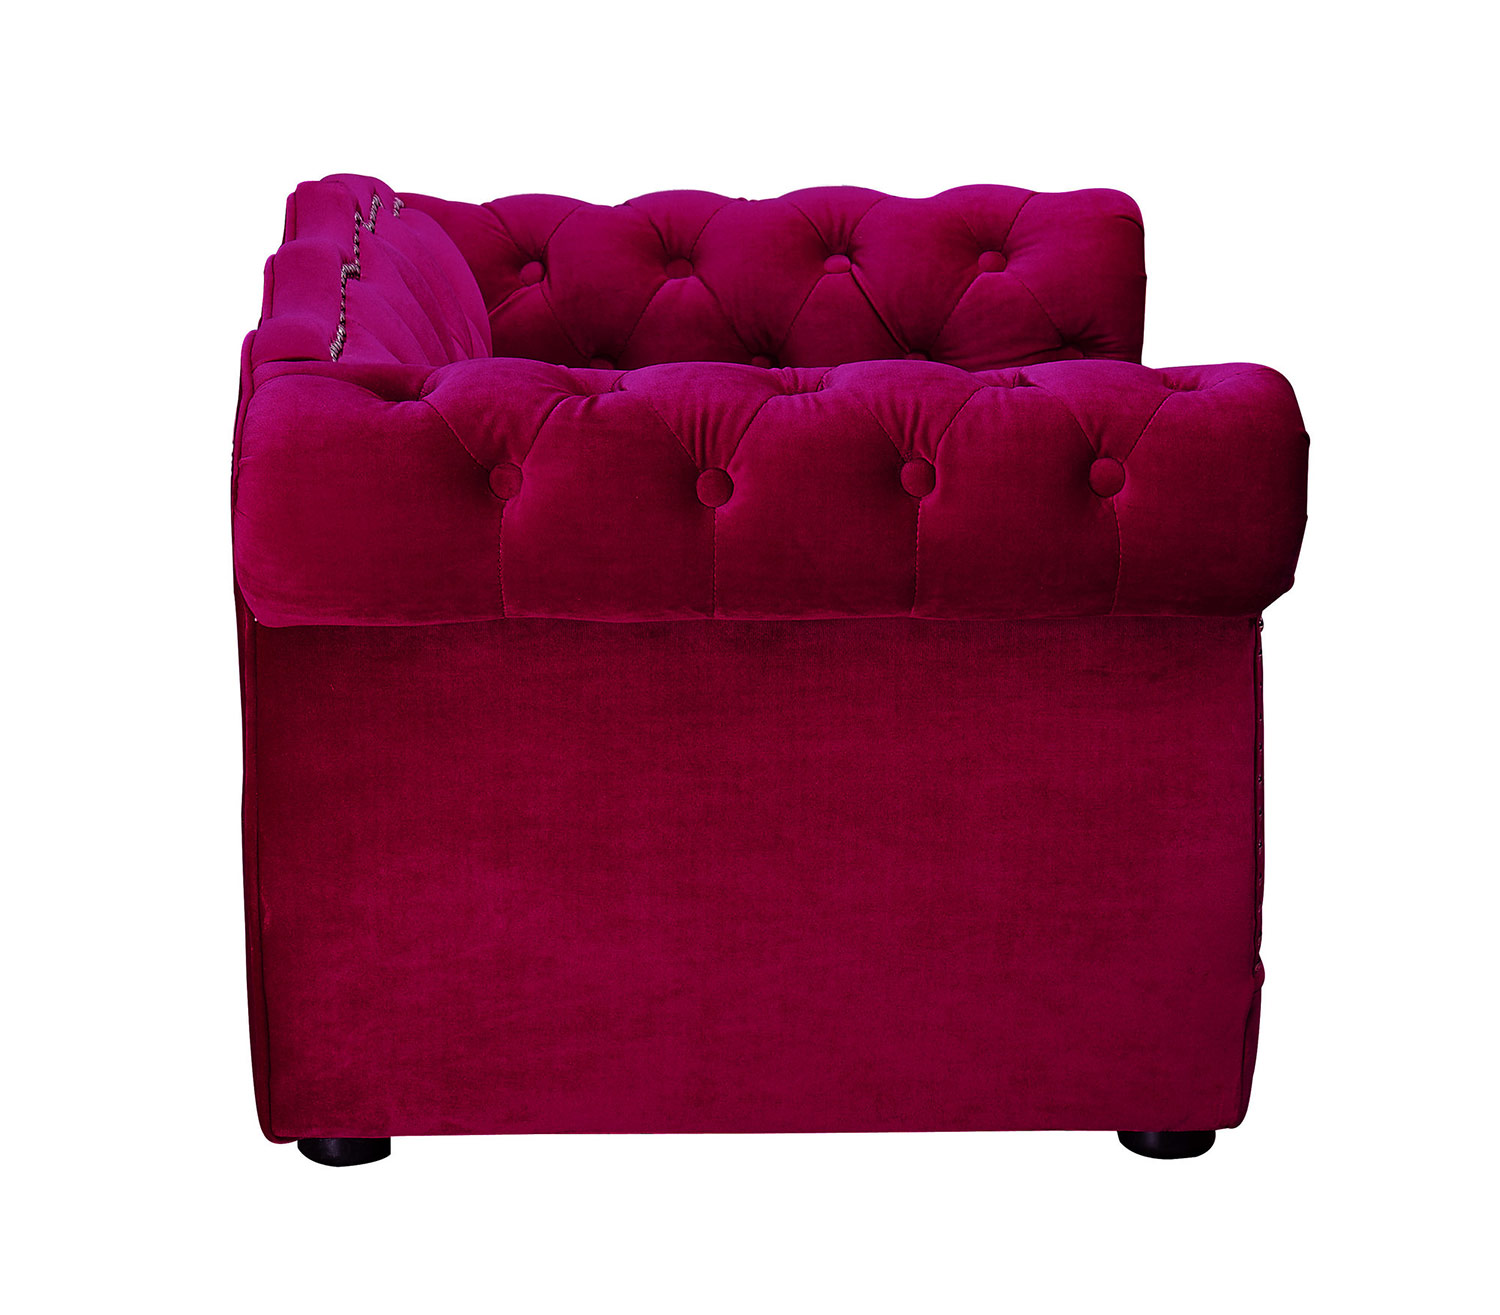 TOV Furniture Yorkshire Pet Bed - Pink